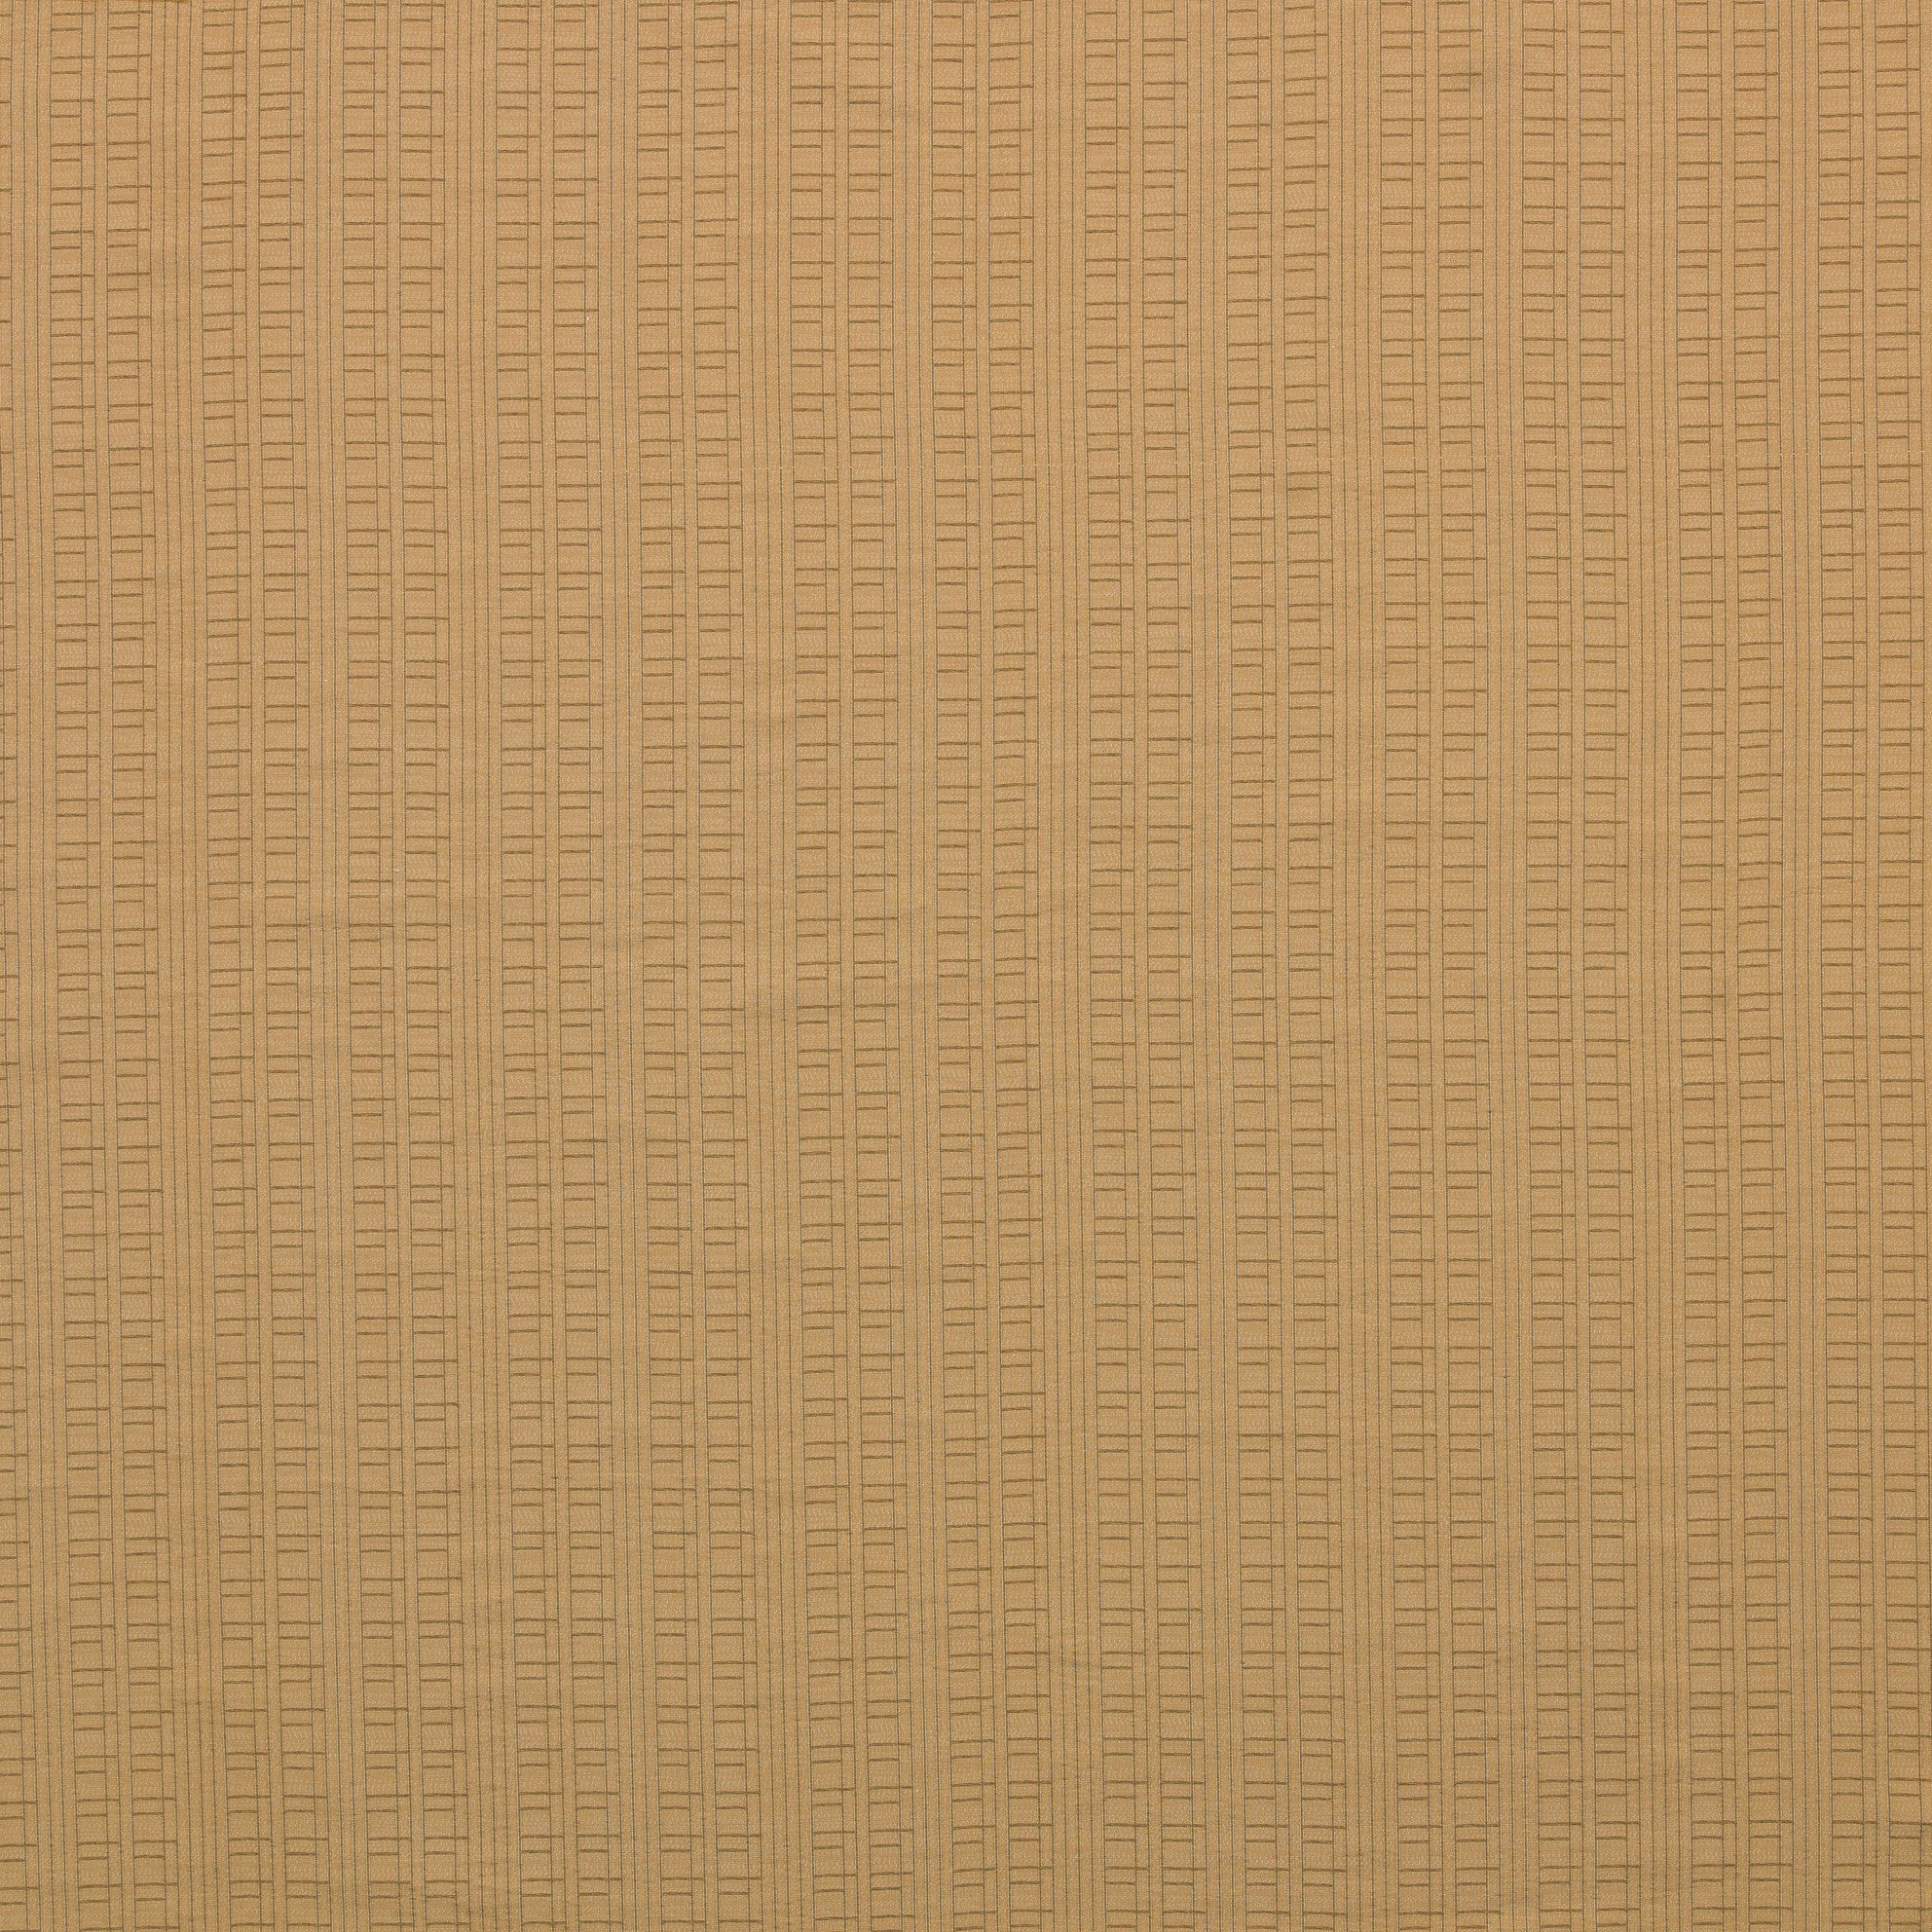 Parnaso Jacquard Fabric - Light Gold | Nicholas Engert